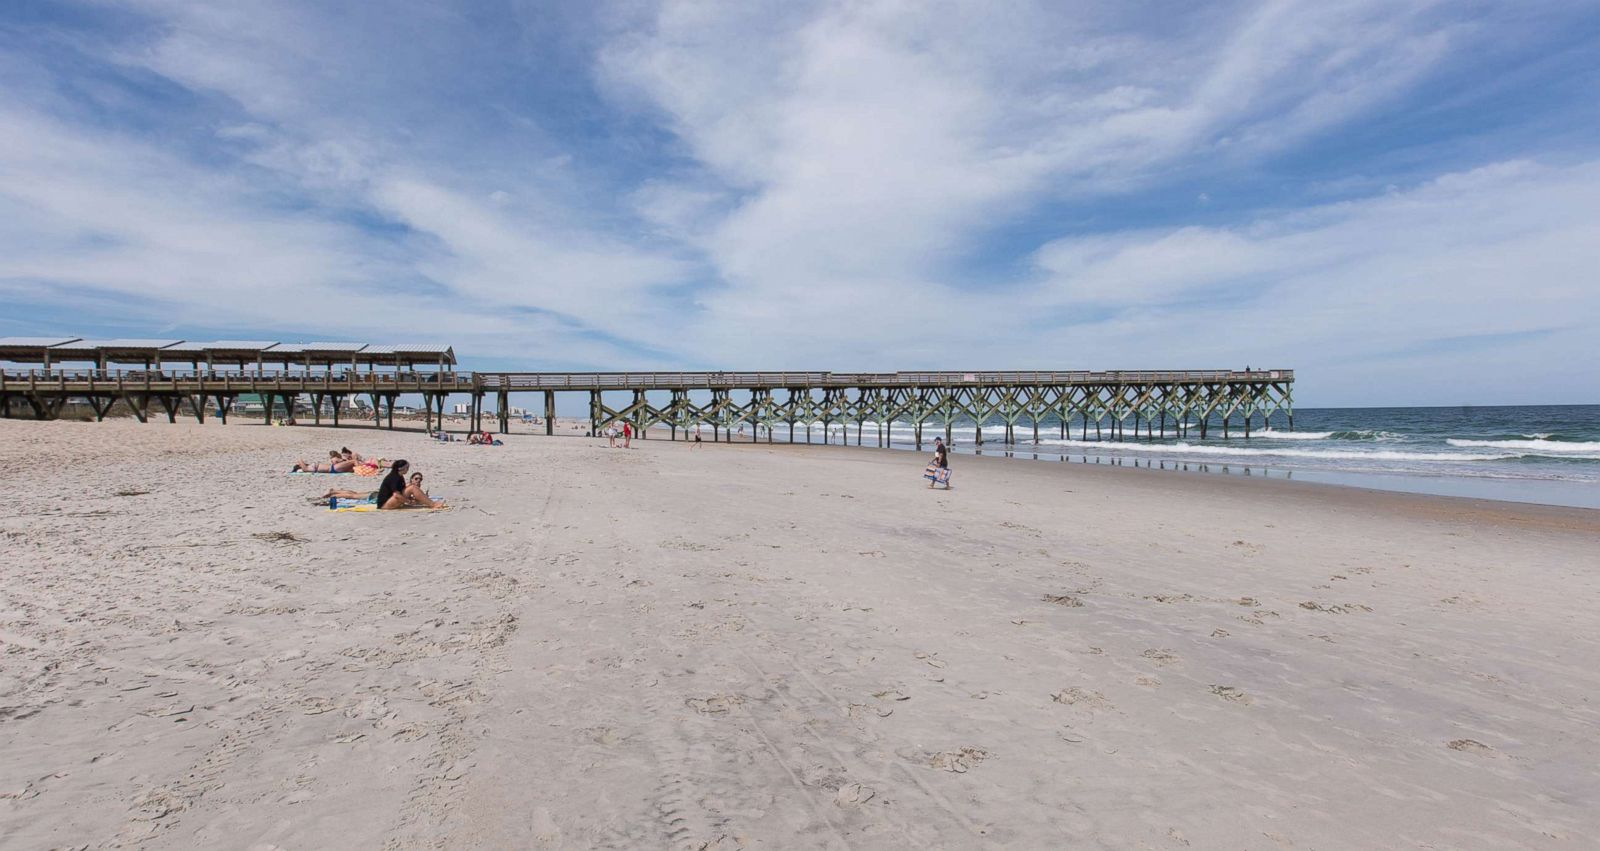 11 affordable beach destinations in the US - ABC News on